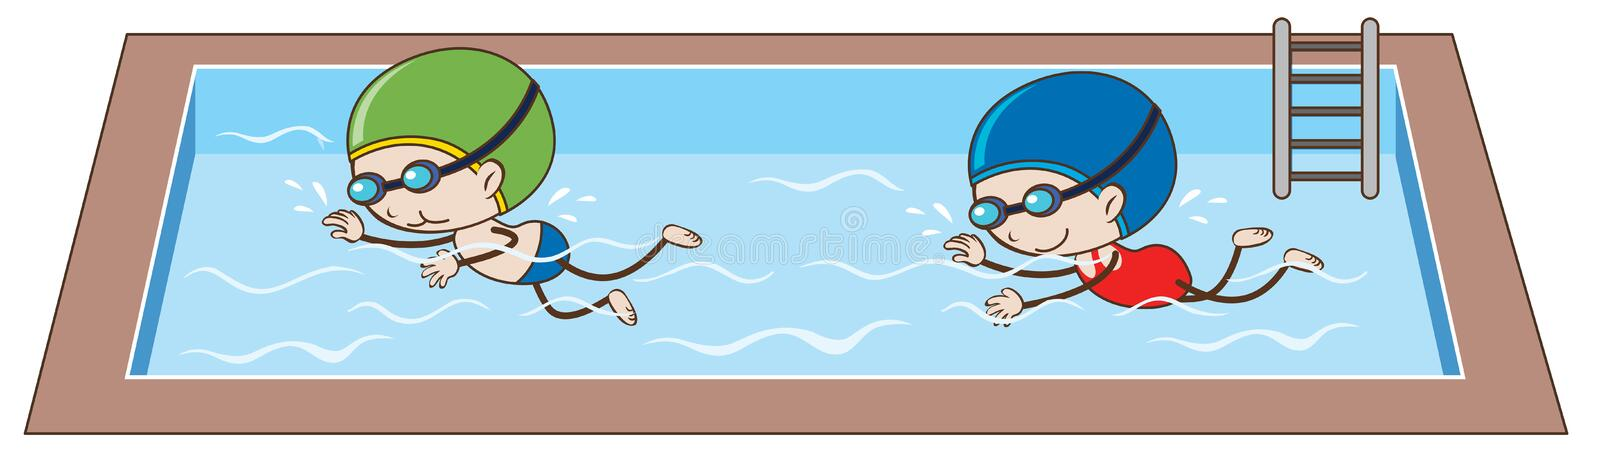 Doodle kids Swimming in the Pool. Illustration stock illustration